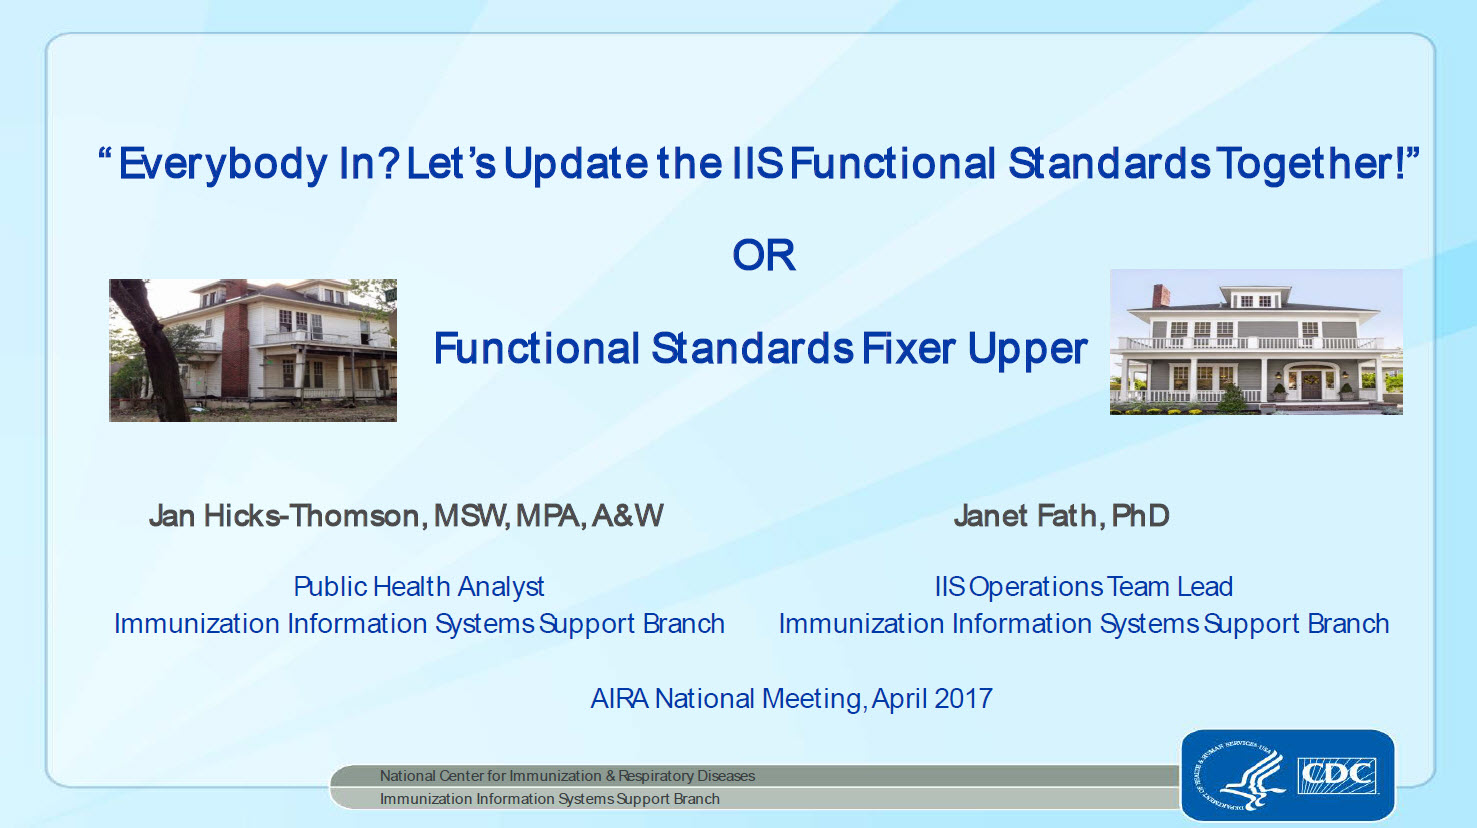 Everybody In? Let's Update the IIS Functional Standards Together